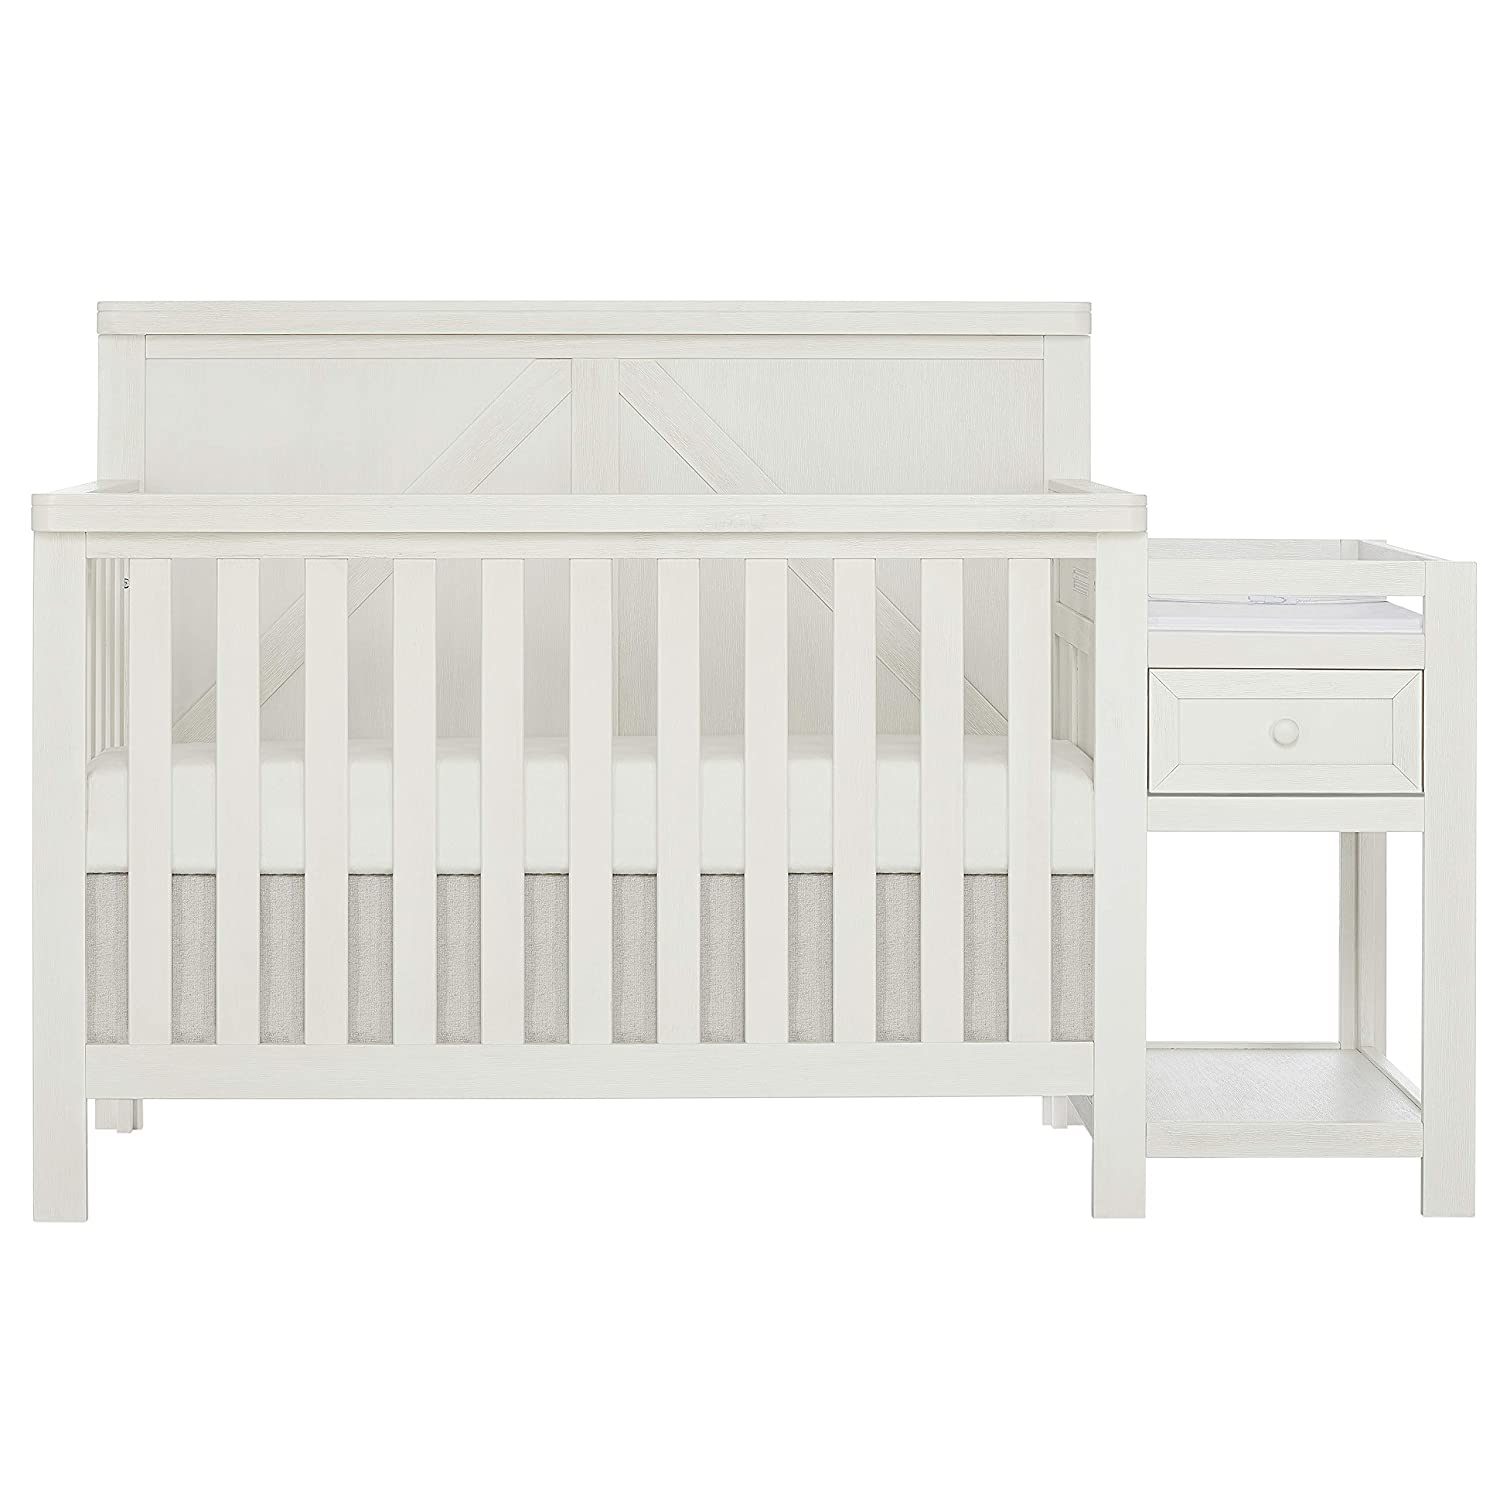 SweetPea Baby Meadowland 5-in-1 Convertible Crib & Changer I Attached Changer I Removable Changing Pad I Space-Saving Storage I Farmhouse Design, Weathered White